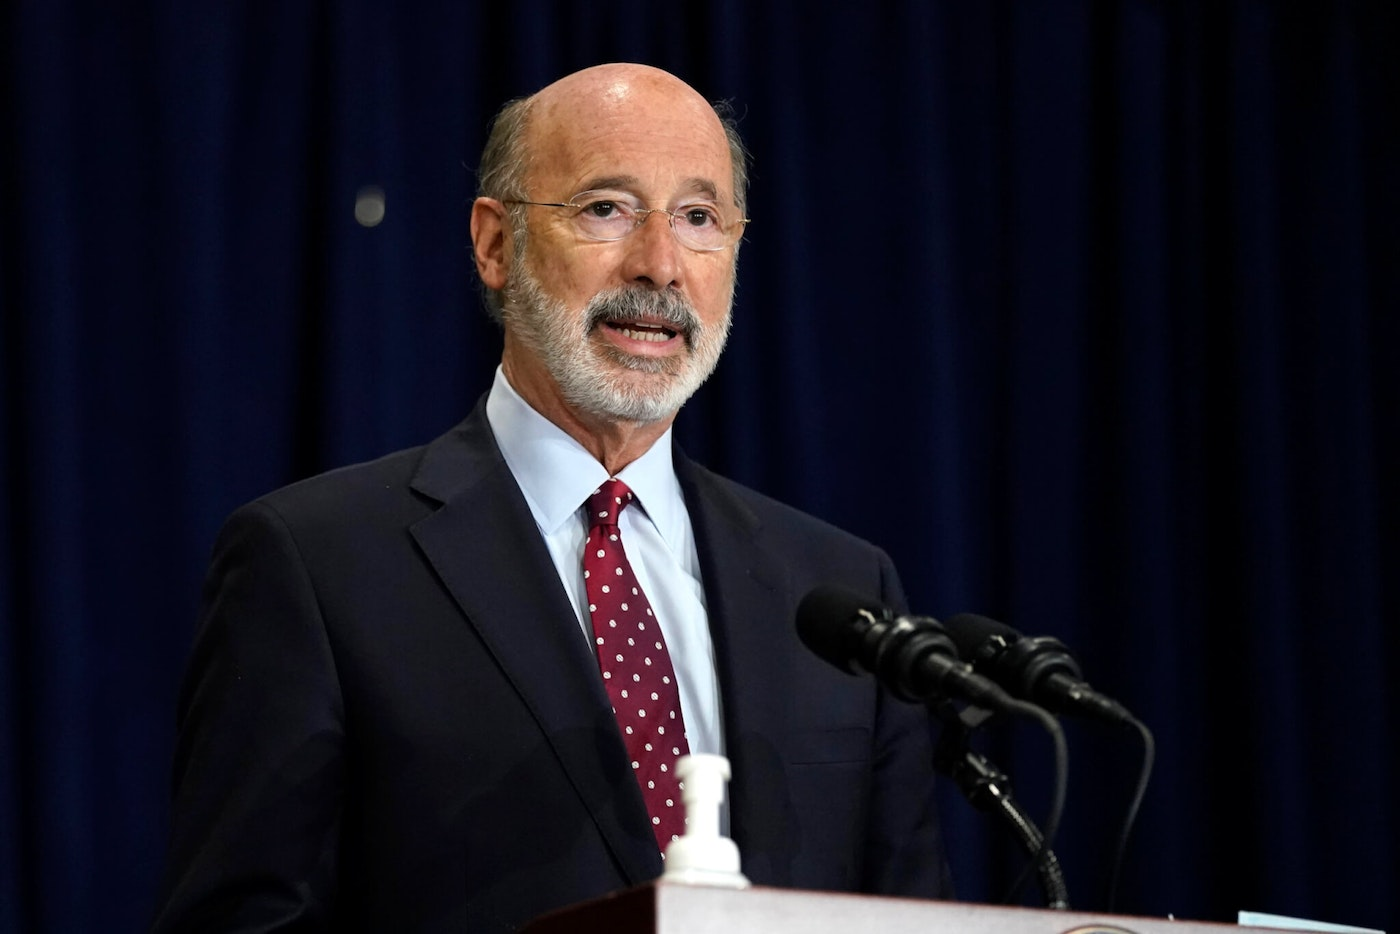 In this Nov. 4, 2020, file photo, Pennsylvania Gov. Tom Wolf speaks during a news conference in Harrisburg, Dauphin County. Facing a deep, pandemic-inflicted budget deficit, Wolf will ask lawmakers for billions of dollars funded by higher taxes on Pennsylvania's huge natural gas industry for workforce development and employment assistance to help the state recover. (AP Photo/Julio Cortez)